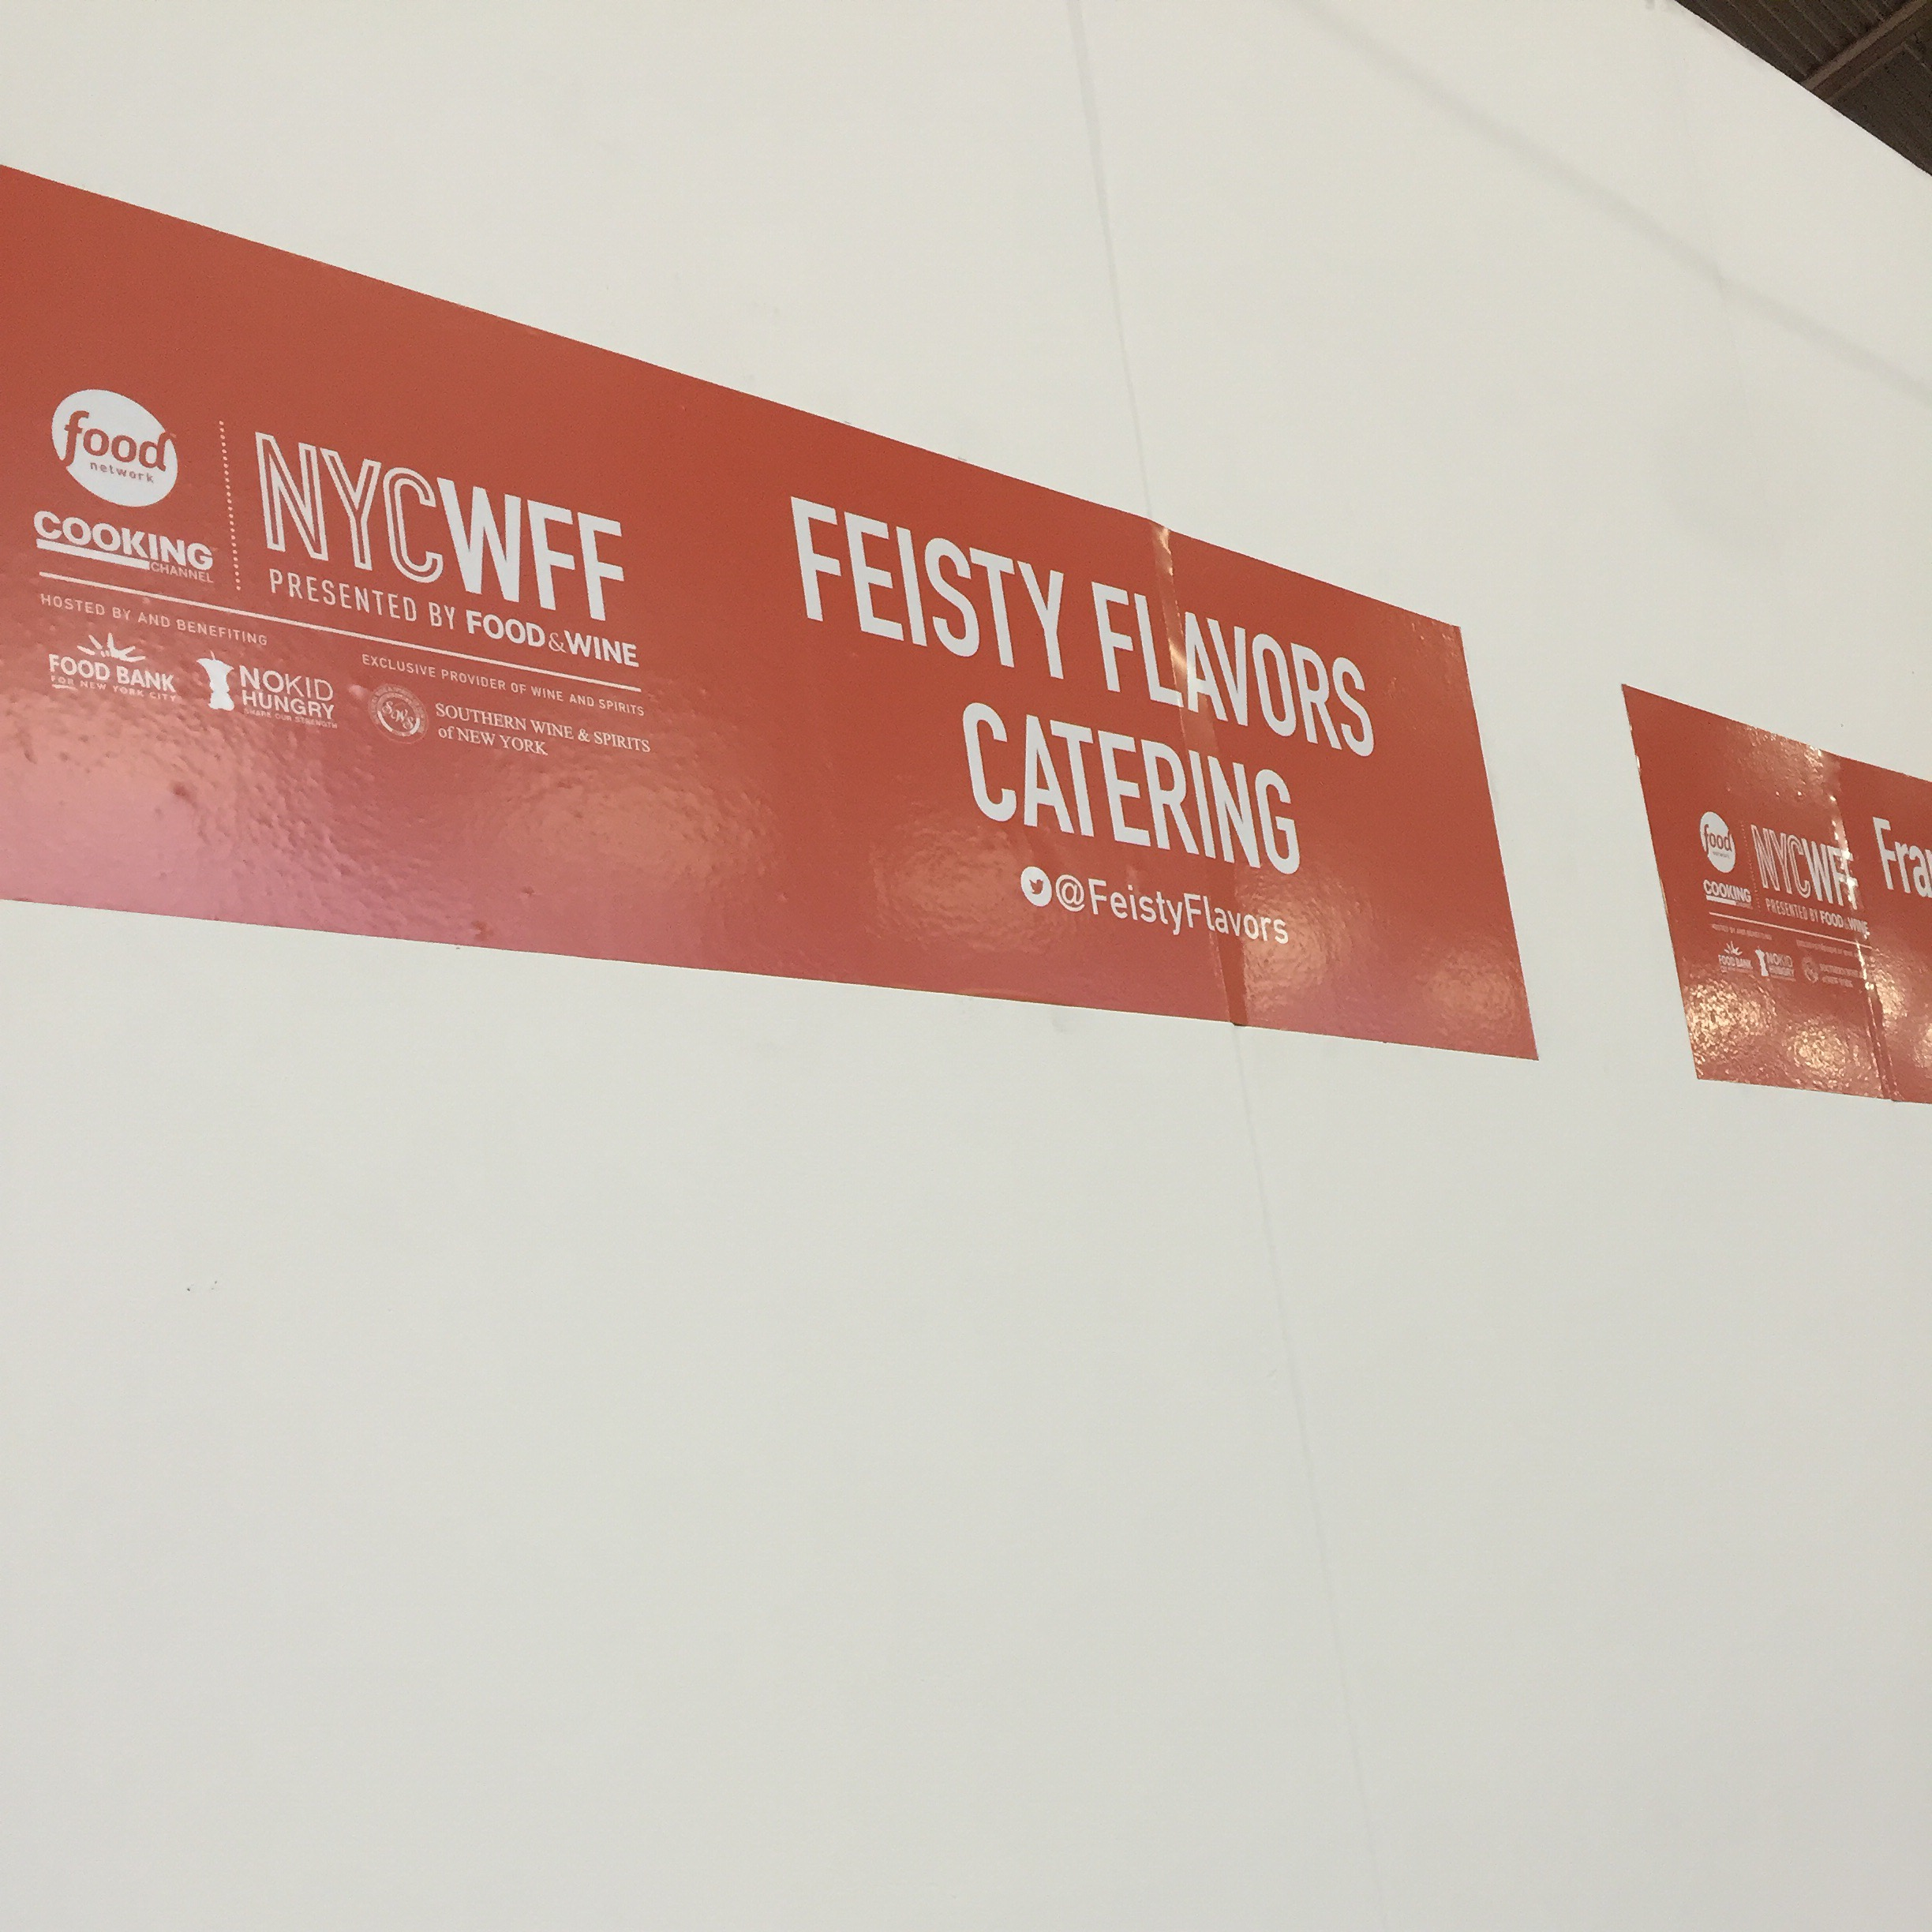 NYCWFF OCT 2015